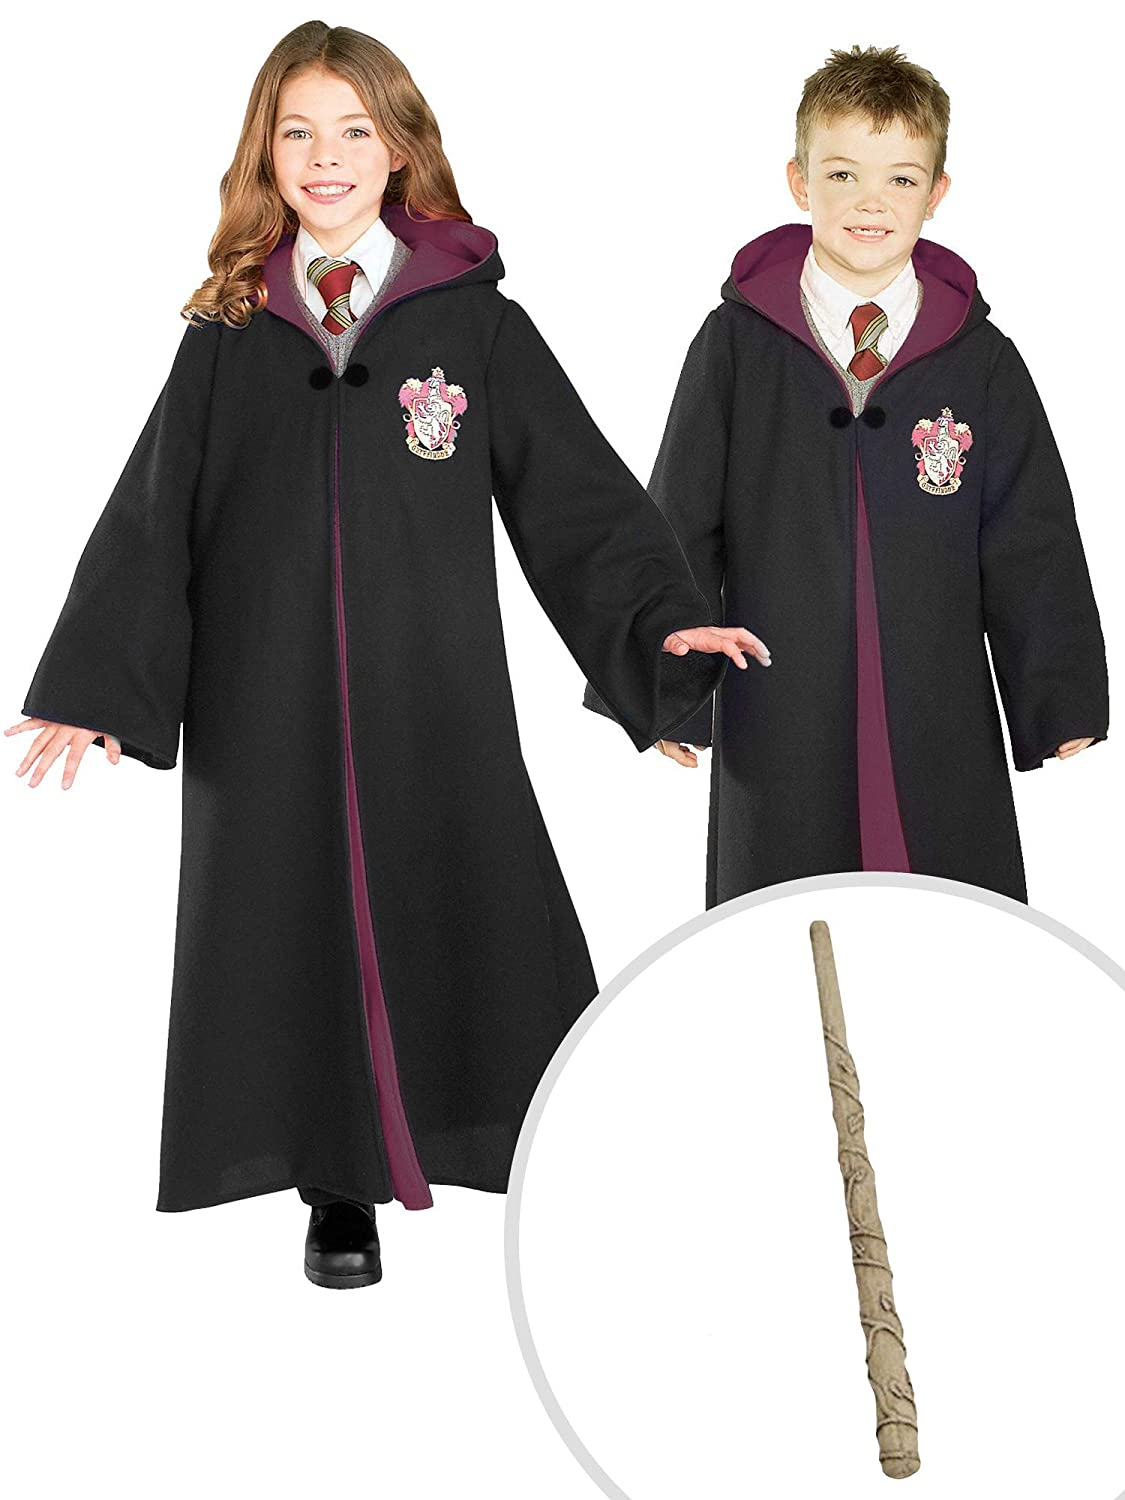 Costume Halloween Hermione.Harry Potter Gryffindor Costume Kit Deluxe Robe With Hermione Wand Kids